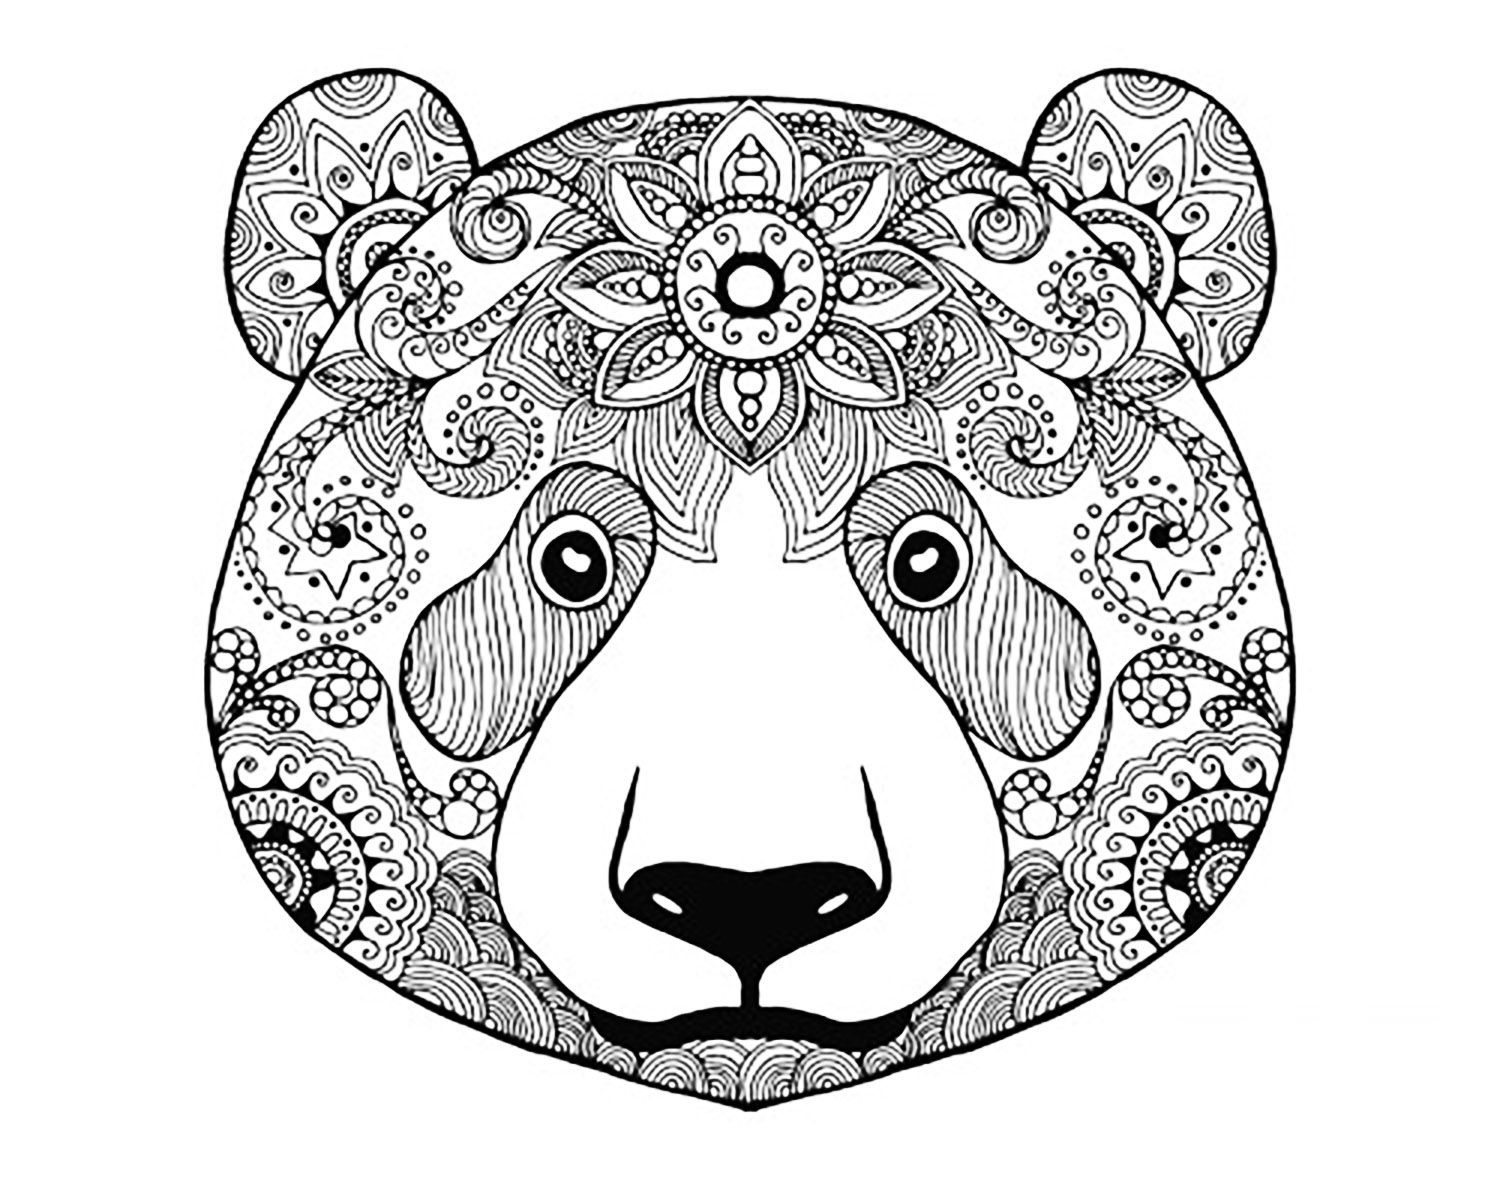 Bear 2 Bears Coloring Pages For Adults Just Color Coloriage